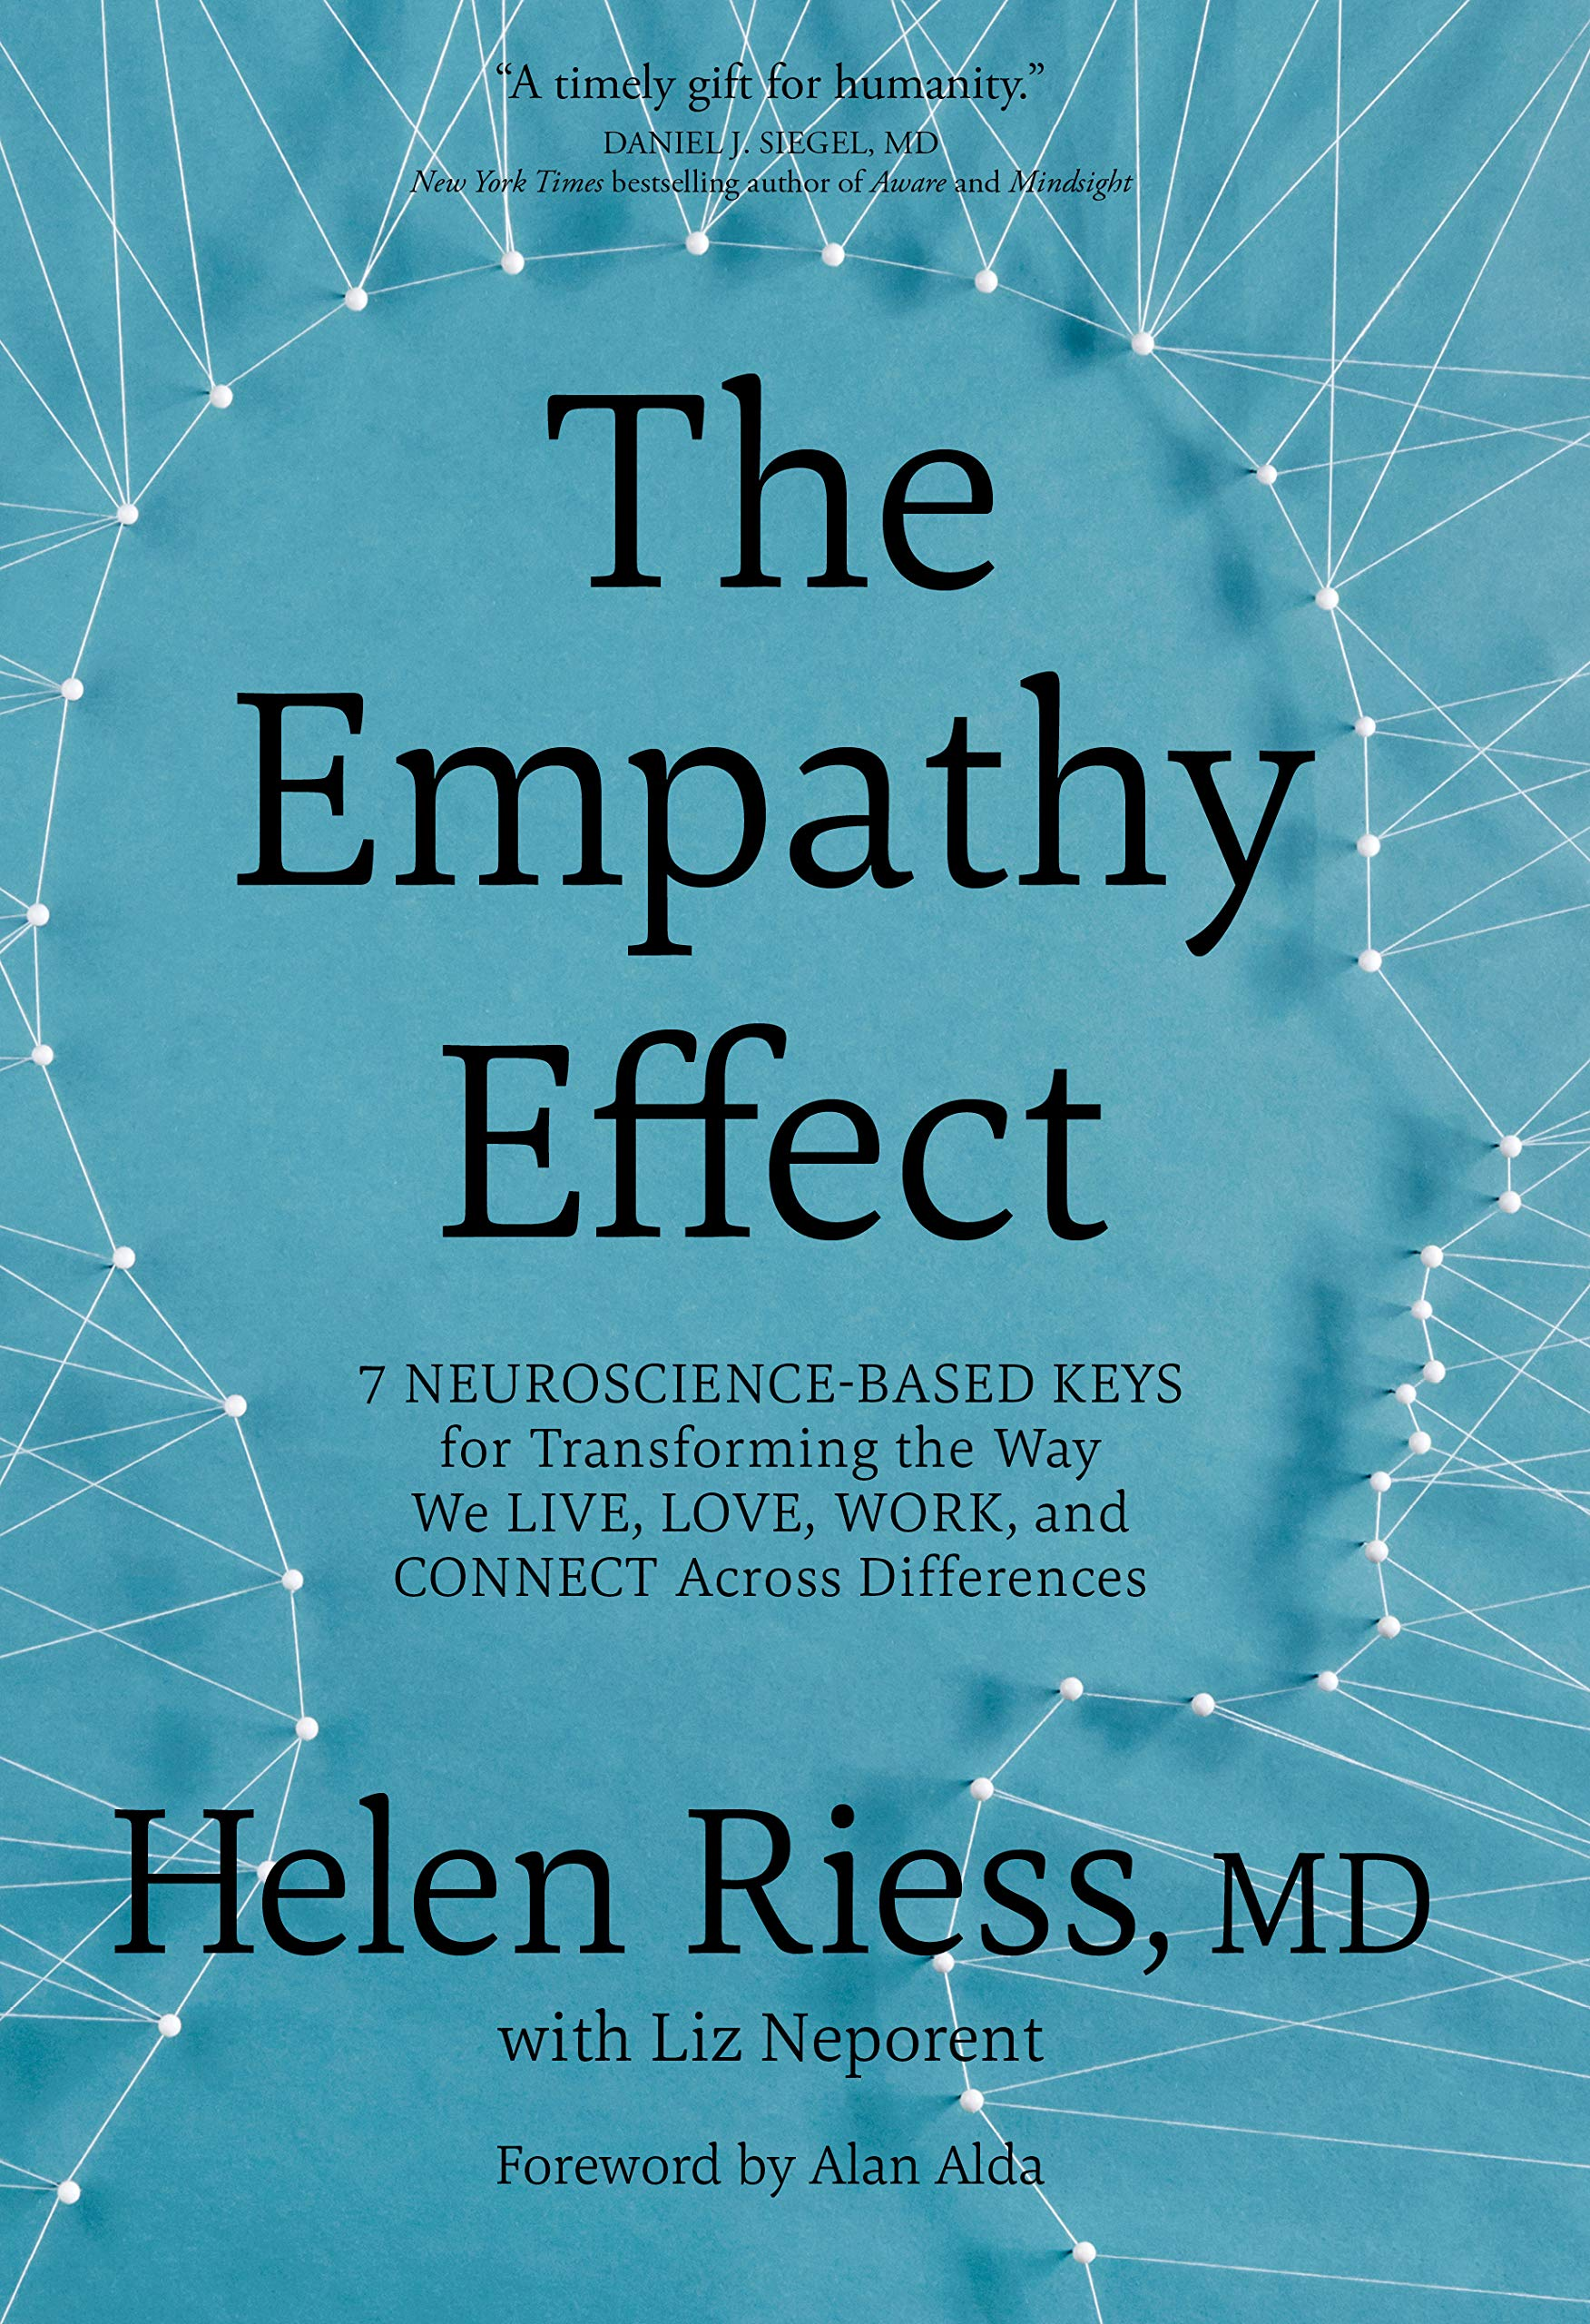 The Empathy Effect for Atomic Moms Podcast